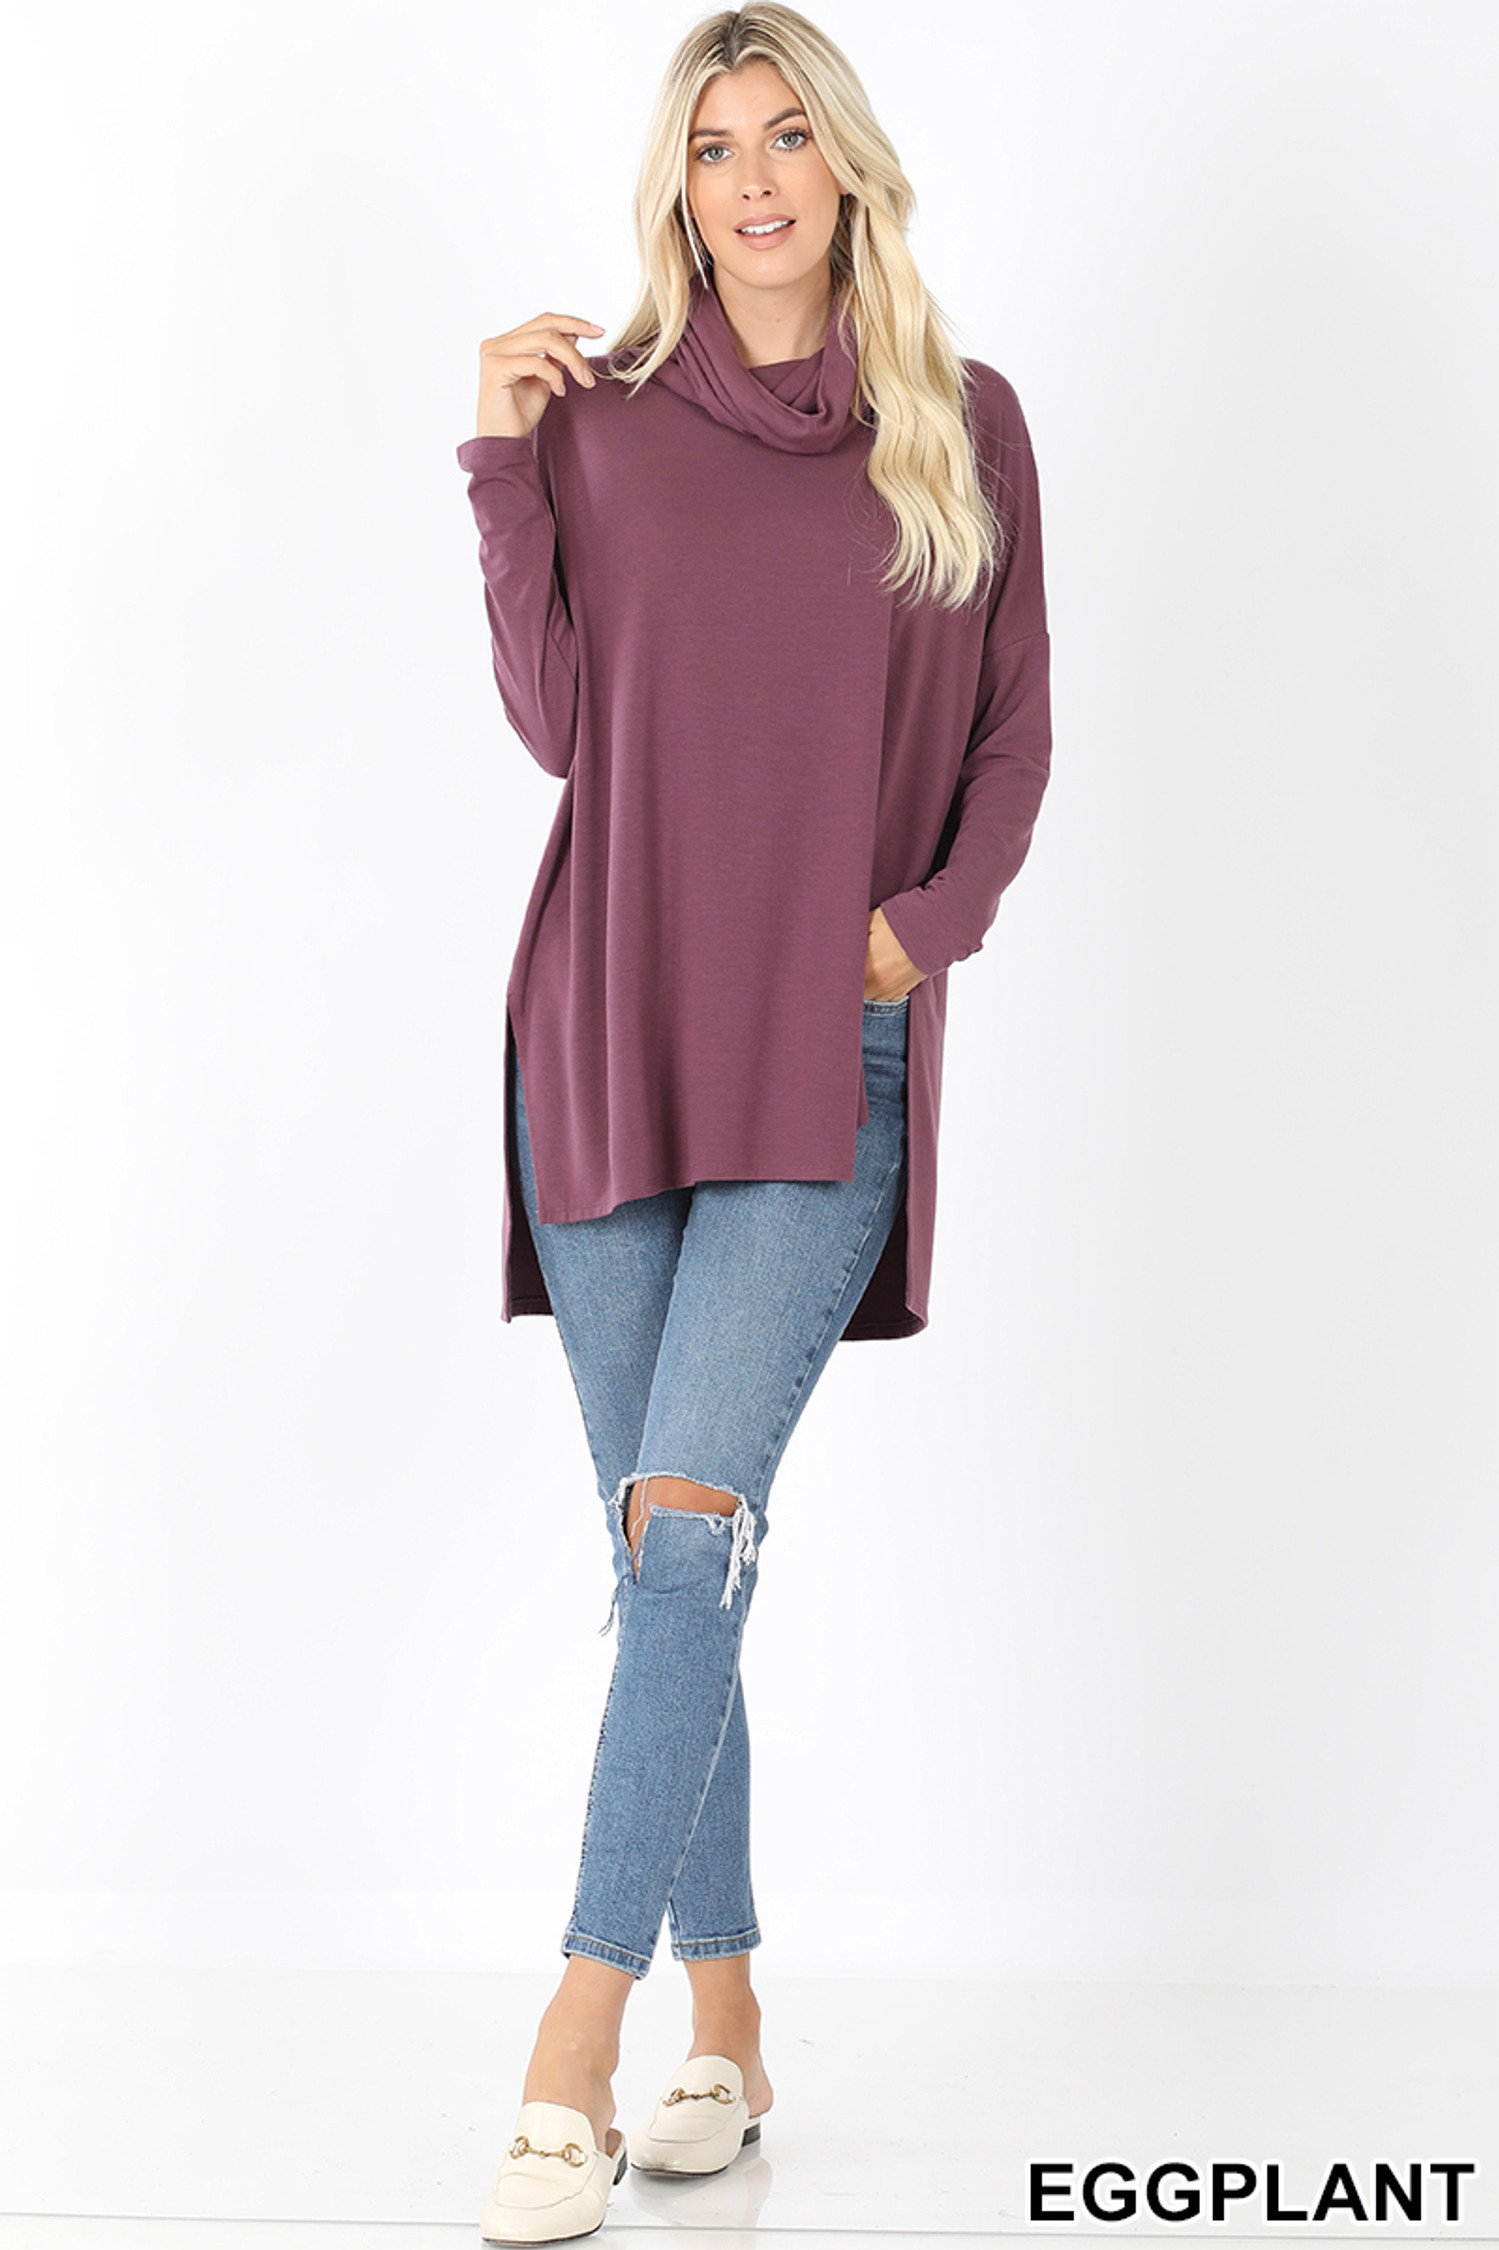 Full body front image of Eggplant Cowl Neck Hi-Low Long Sleeve Top